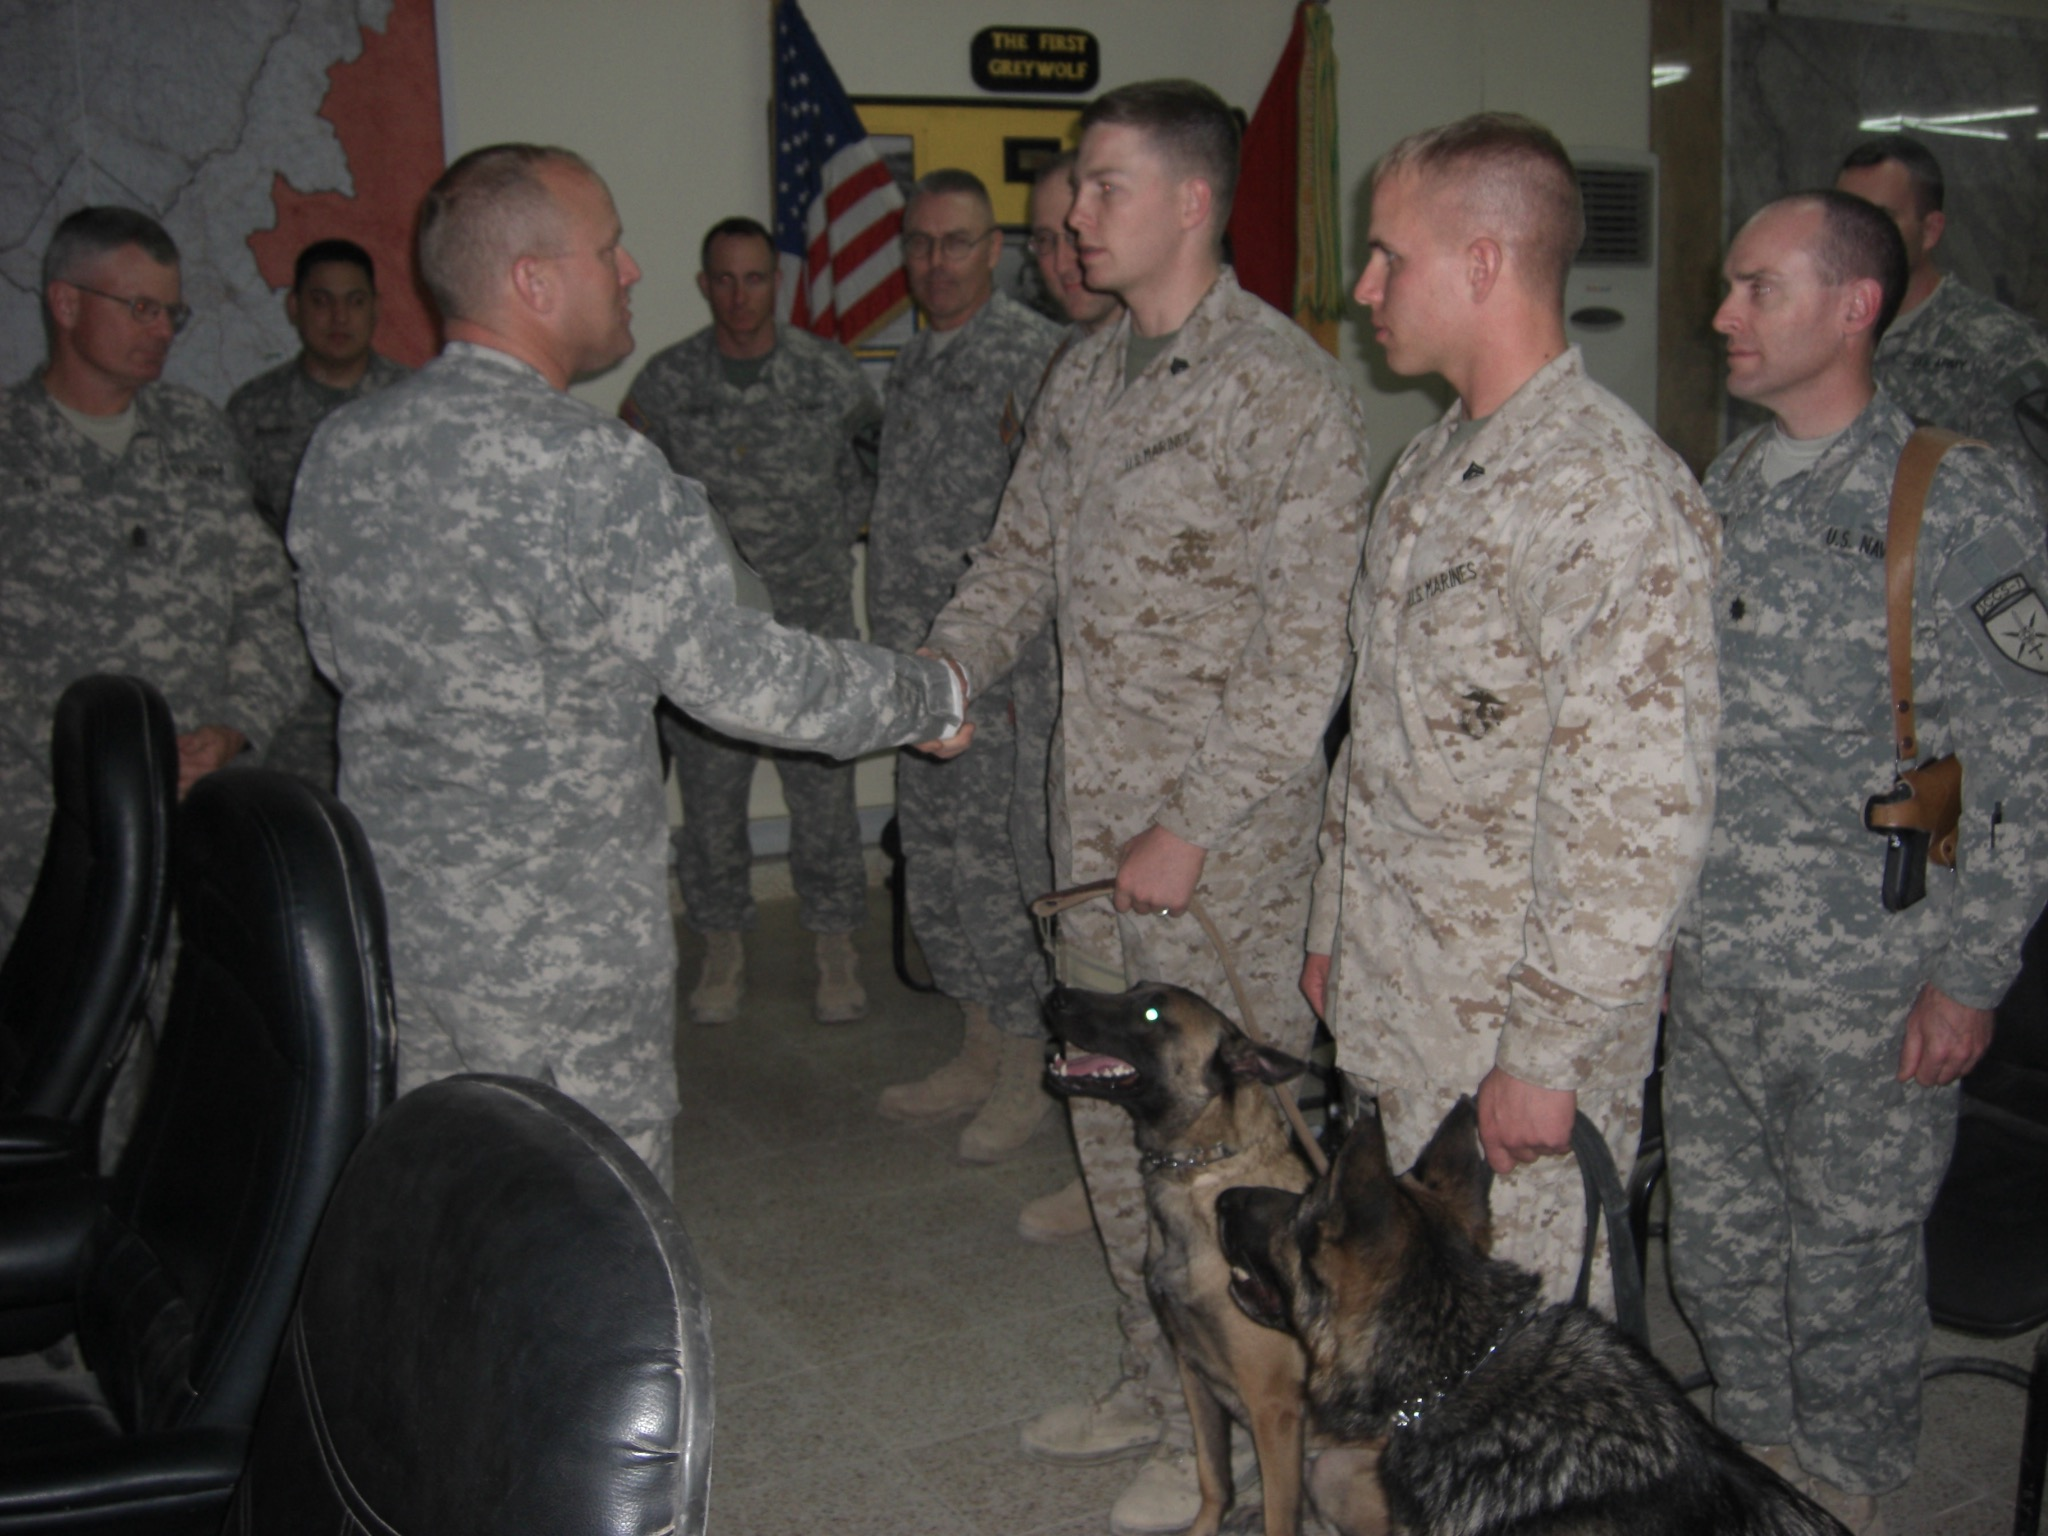 Baity (MWD Rona) and Kinney (MWD Hans) in Baghdad Iraq being awarded Army Commendation Medals for service to the US Army.